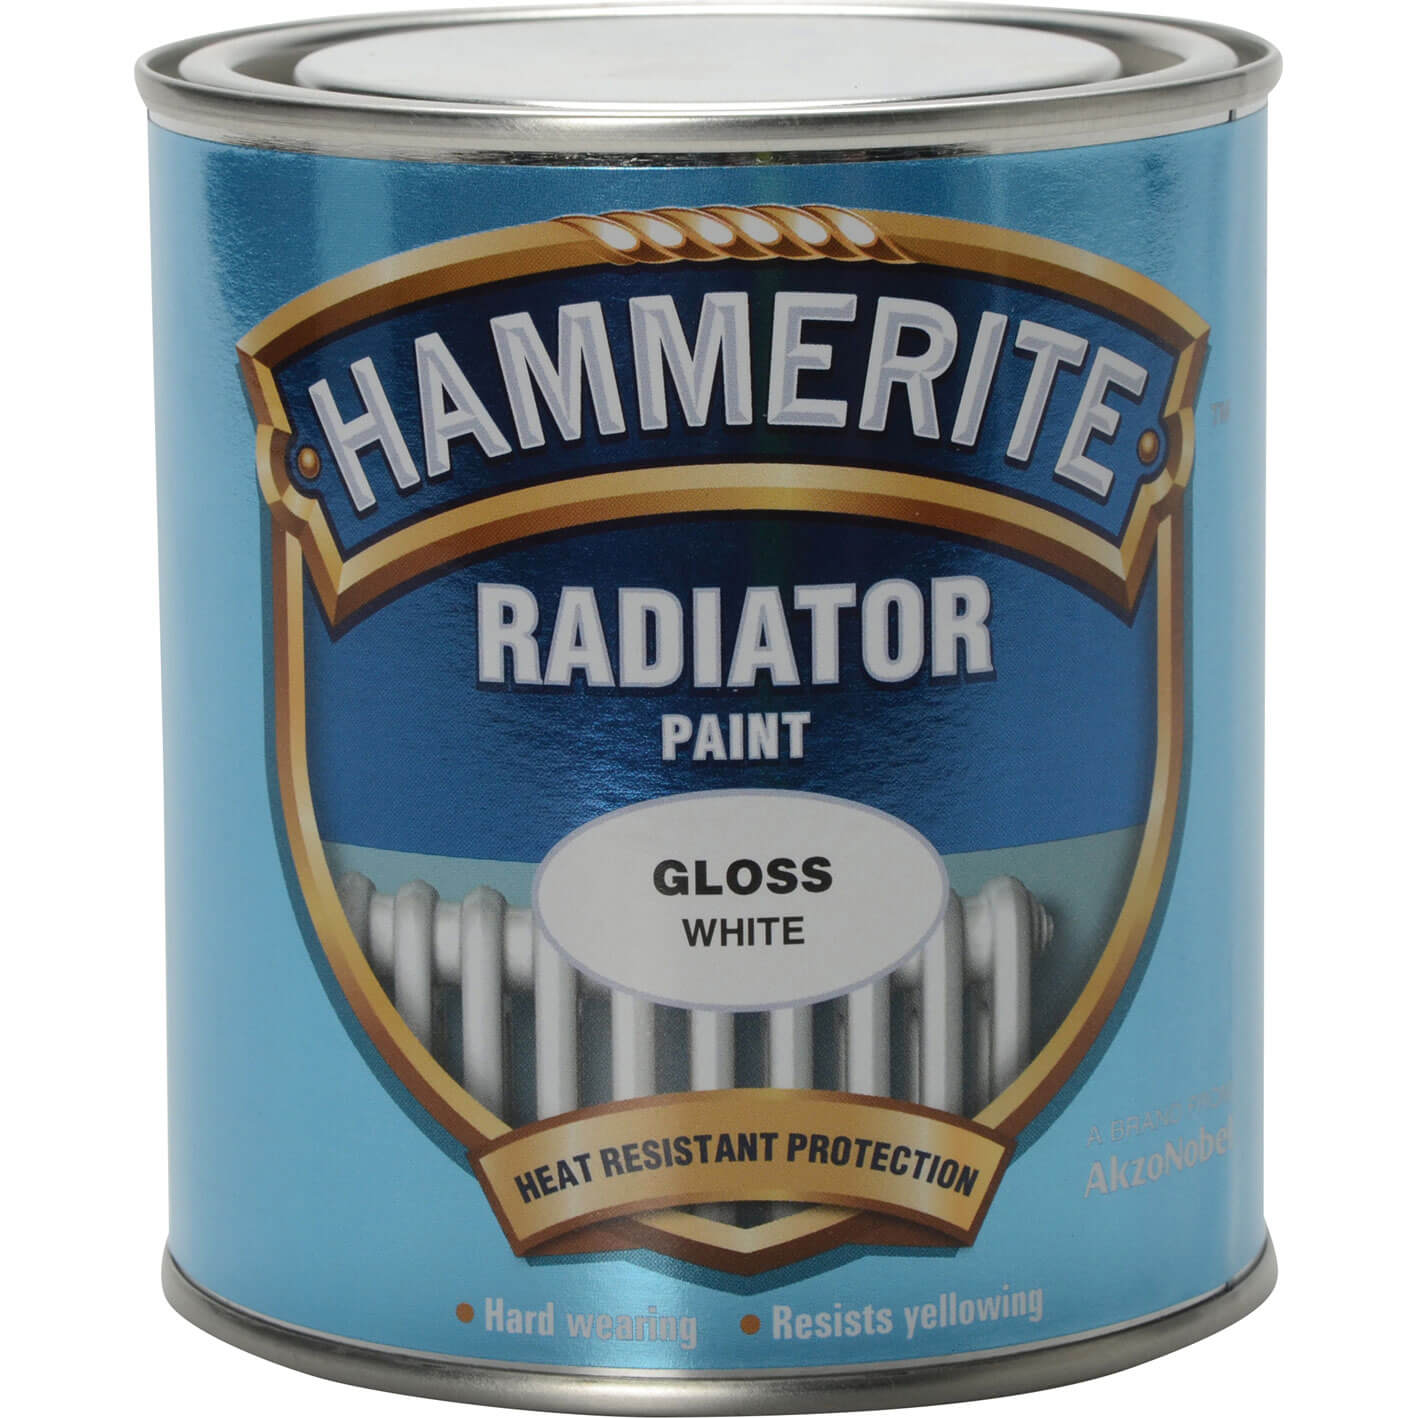 Image of Hammerite Radiator Enamel Paint Gloss White 500ml